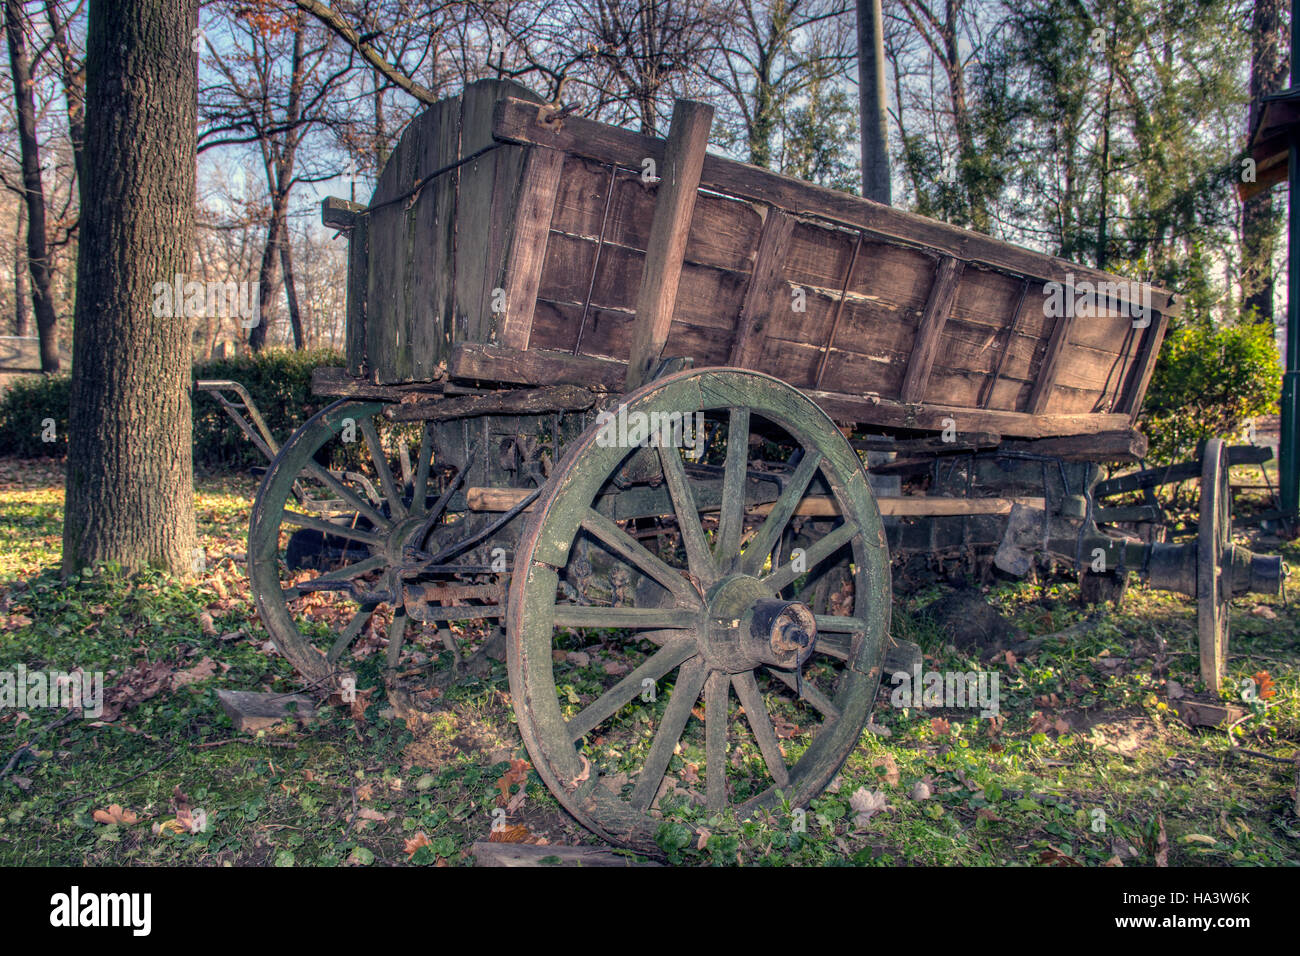 Serbia - Worn out carriage in the countryside - Stock Image